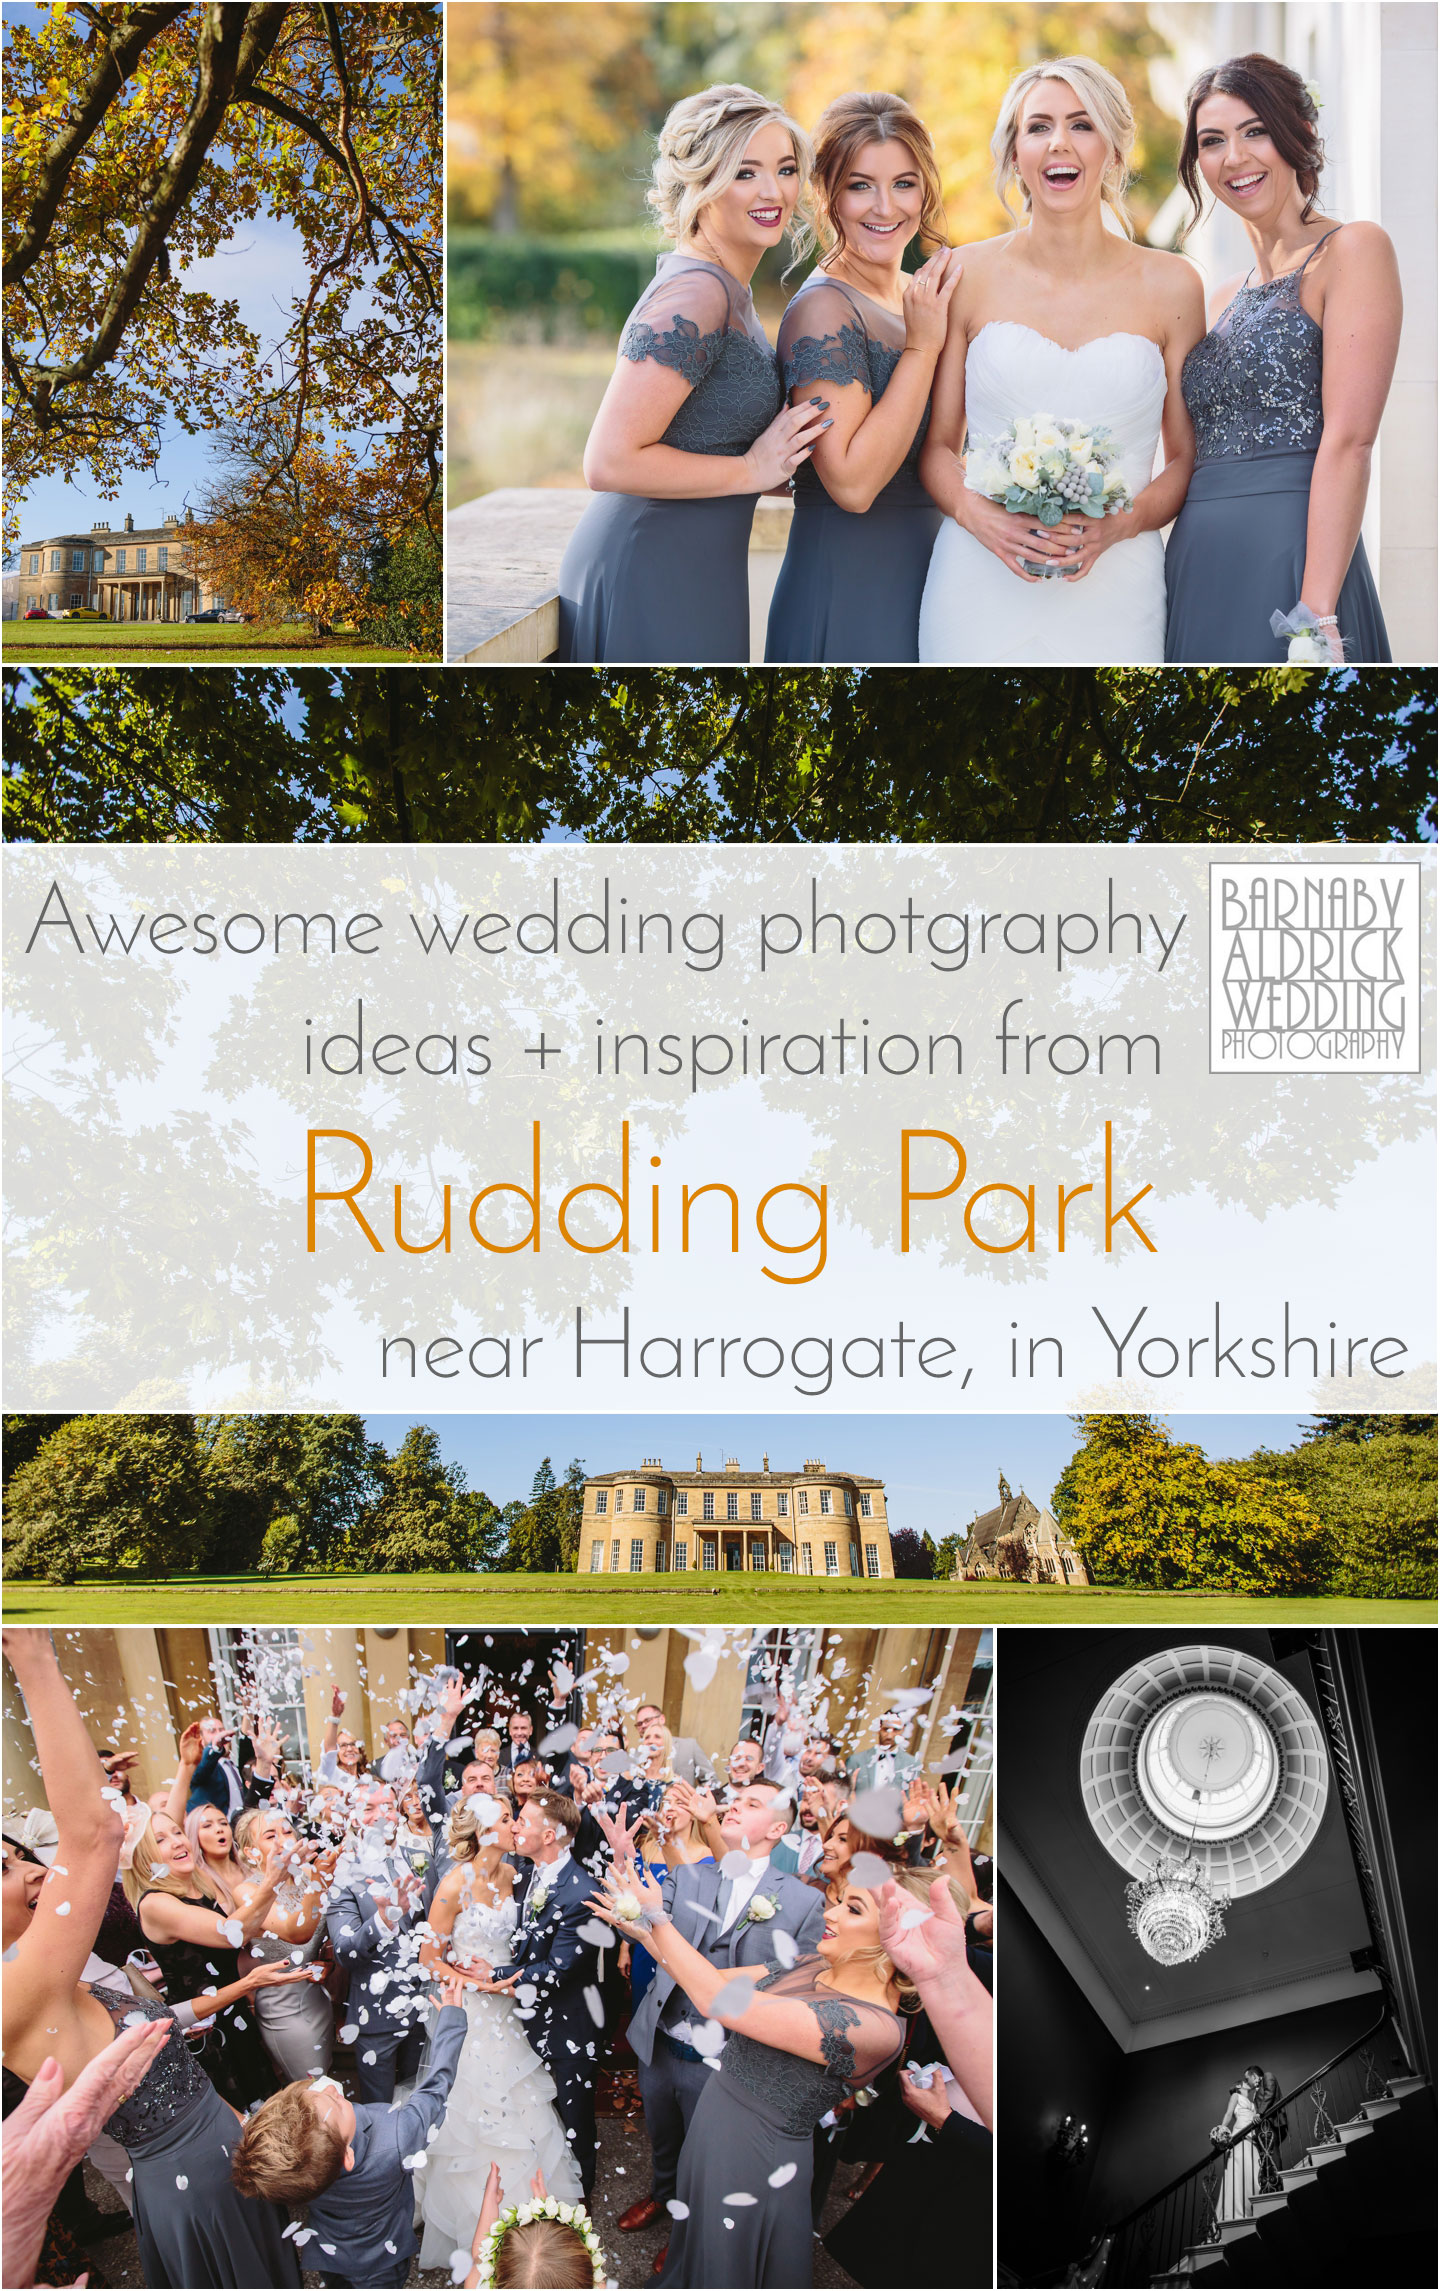 Wedding Photos ideas and inspiration from Rudding Park near Harrogate in North Yorkshire